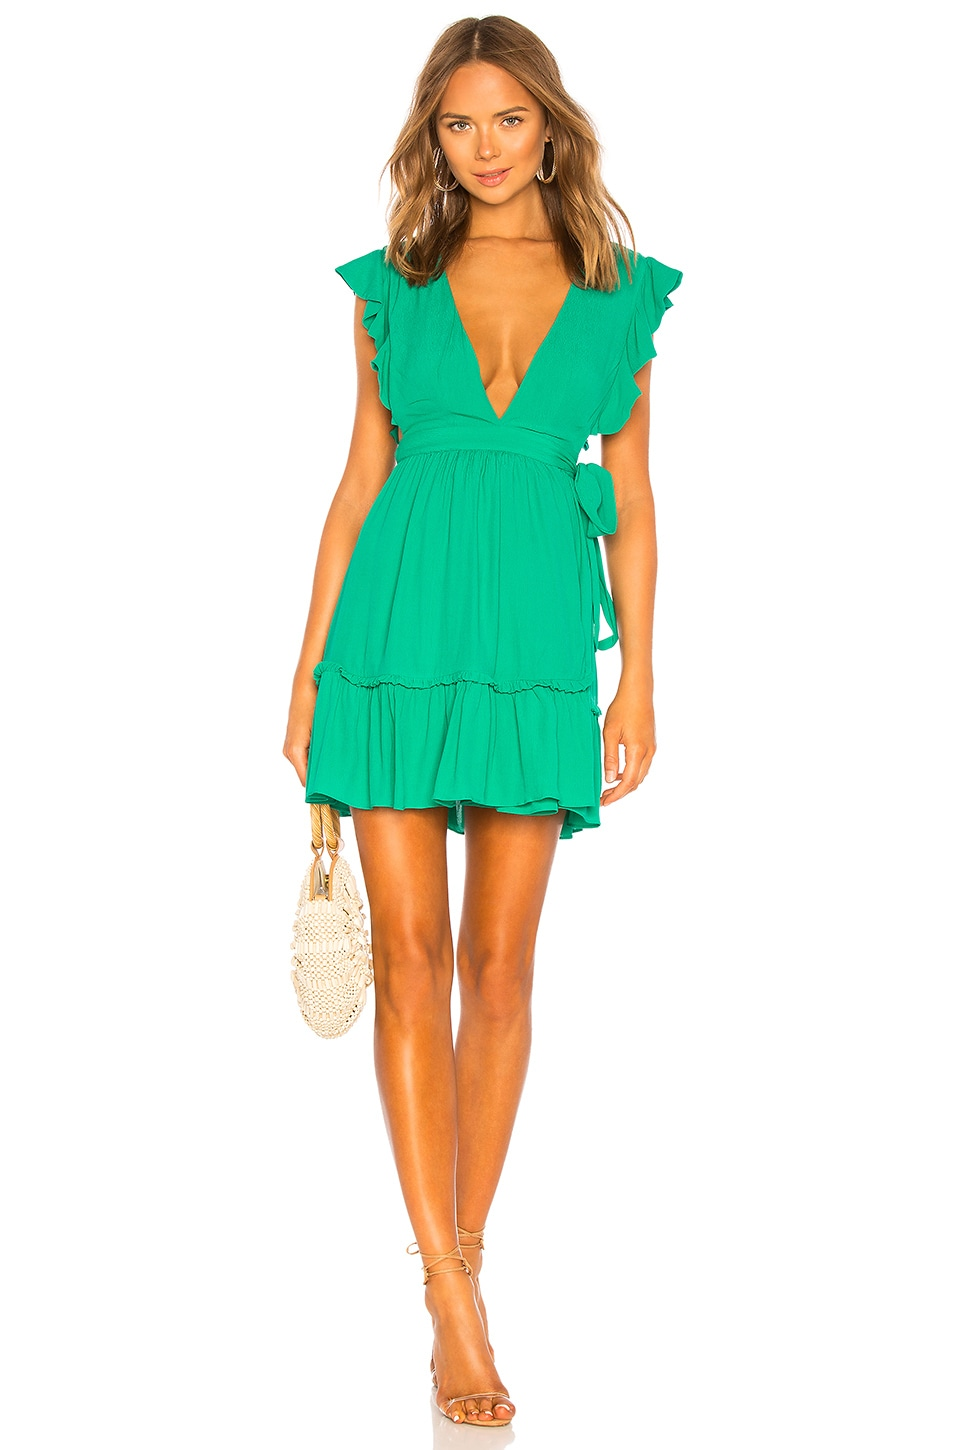 MAJORELLE Misty Dress in Kelly Green